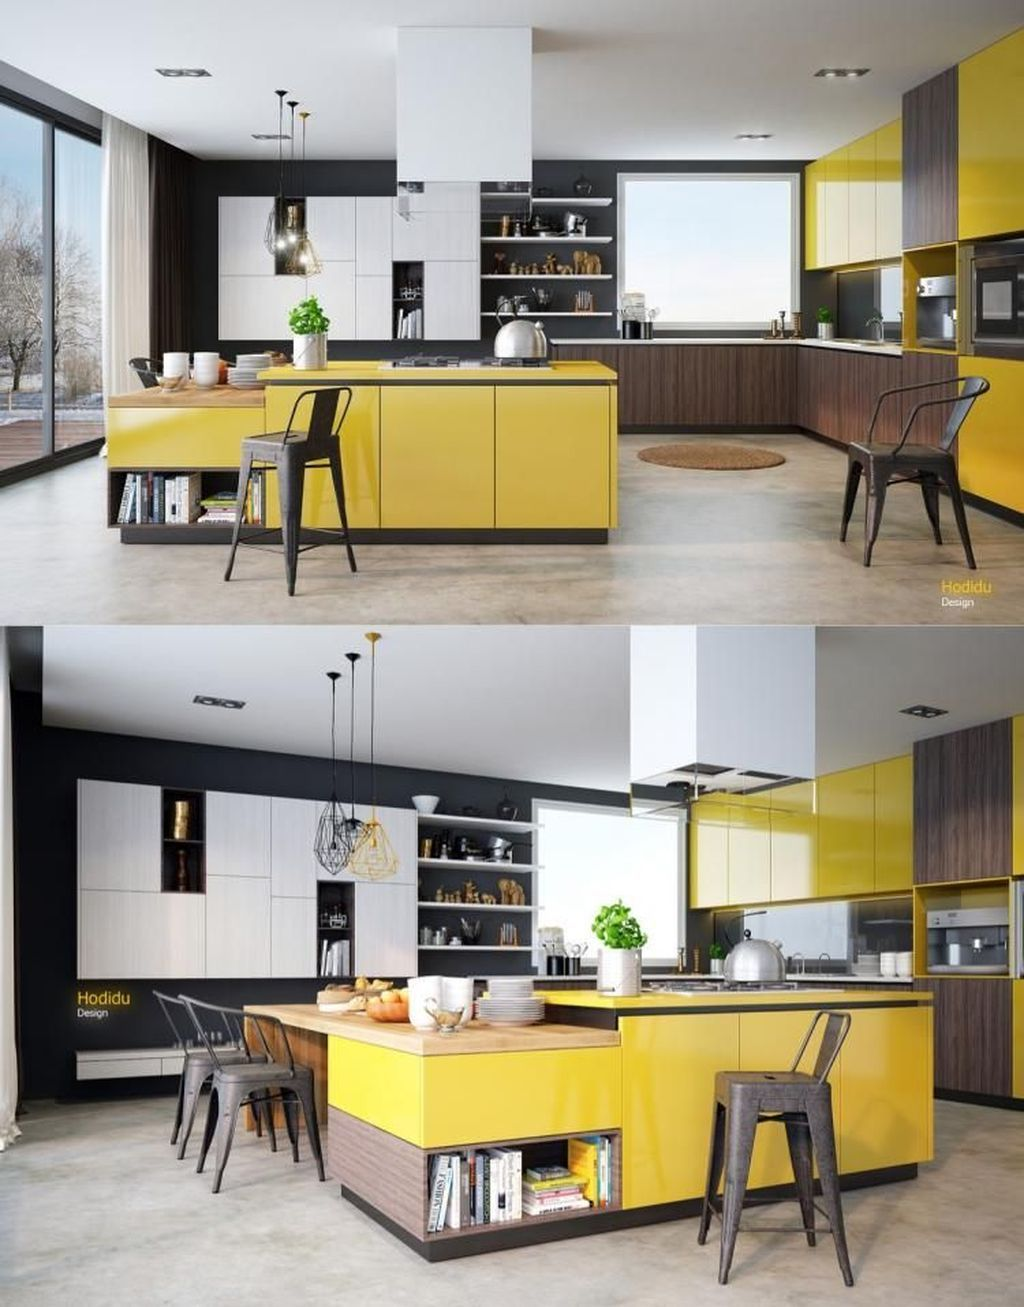 Pin By Trend4homy On Kitchen Design Ideas In 2019 Yellow Kitchen